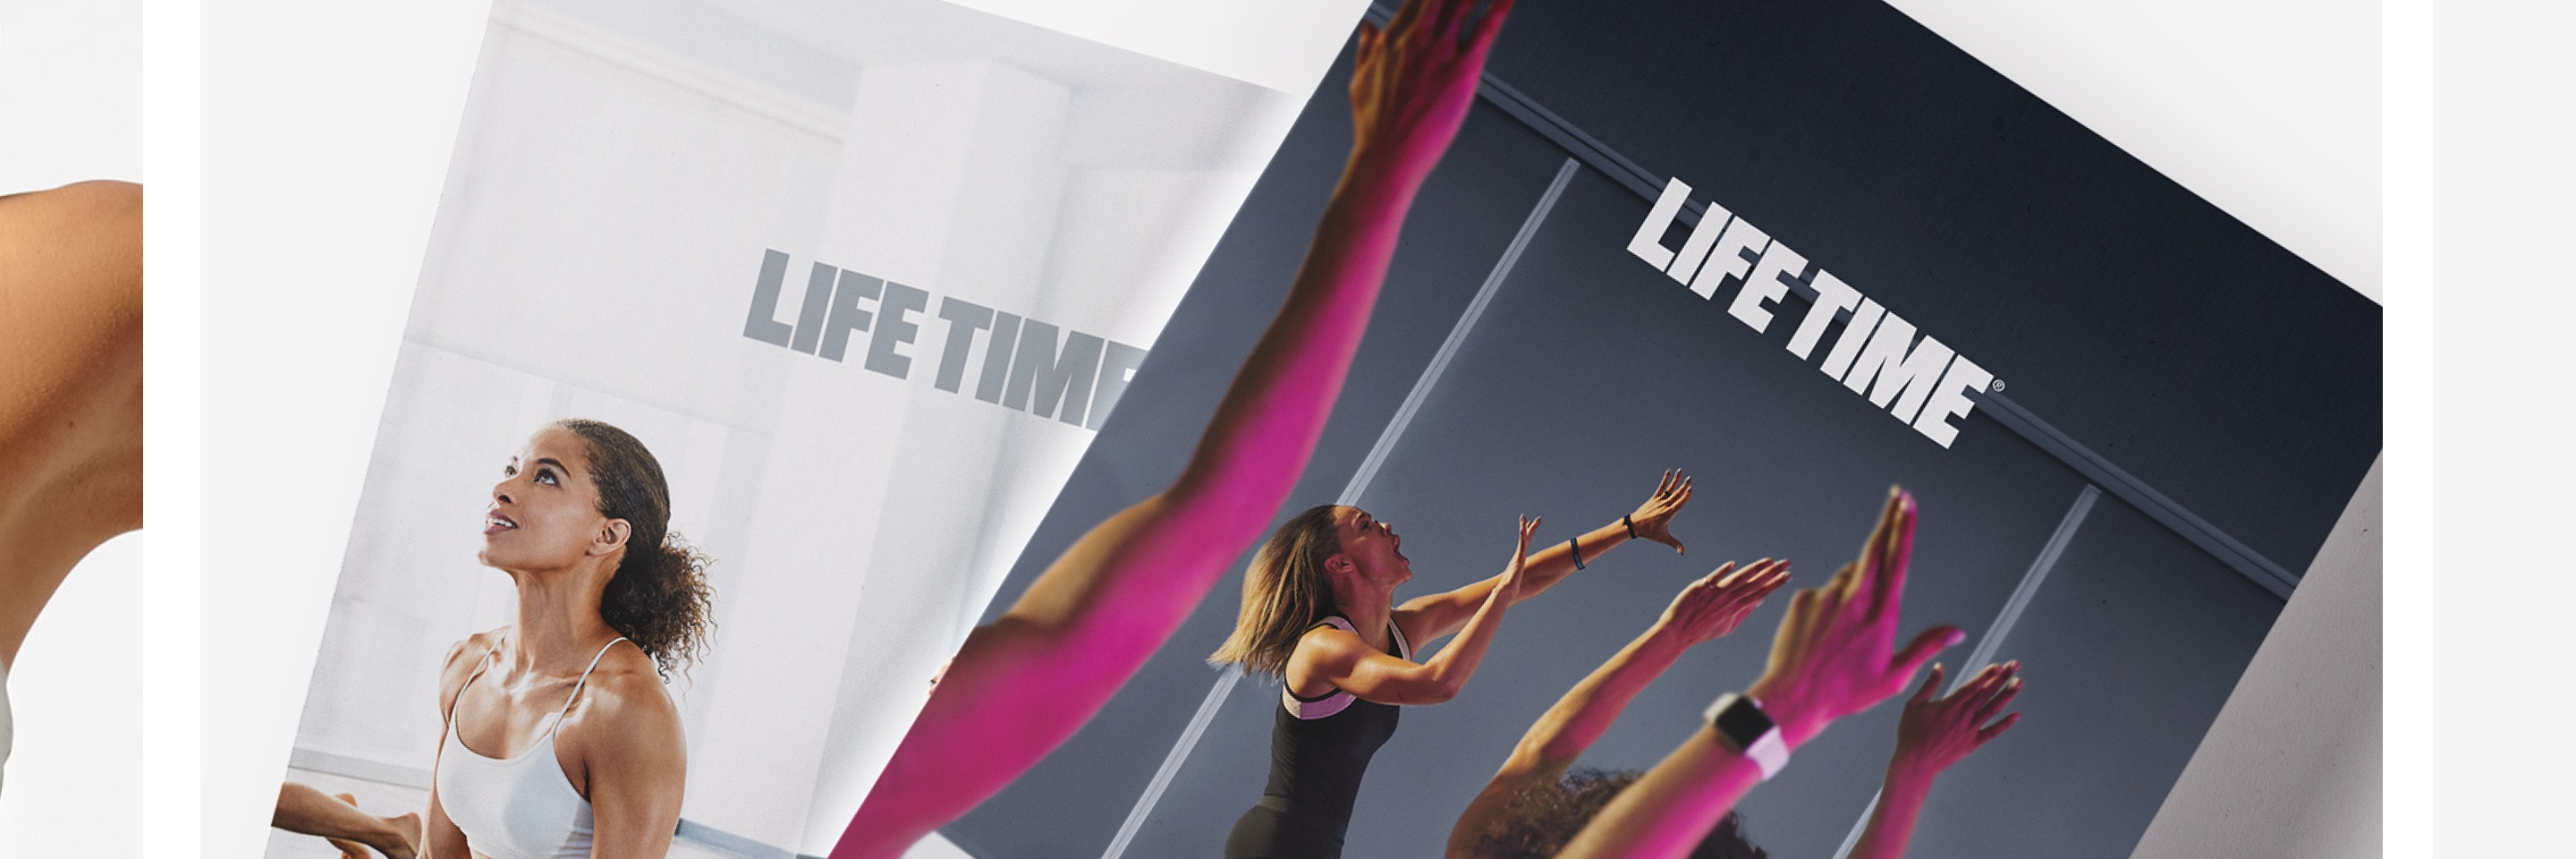 2 Life Time magazines, stacked on top of each other. One showing a women in a yoga pose with the Life Time logo above her, the second shows an indoor cycling class with the life time logo above.